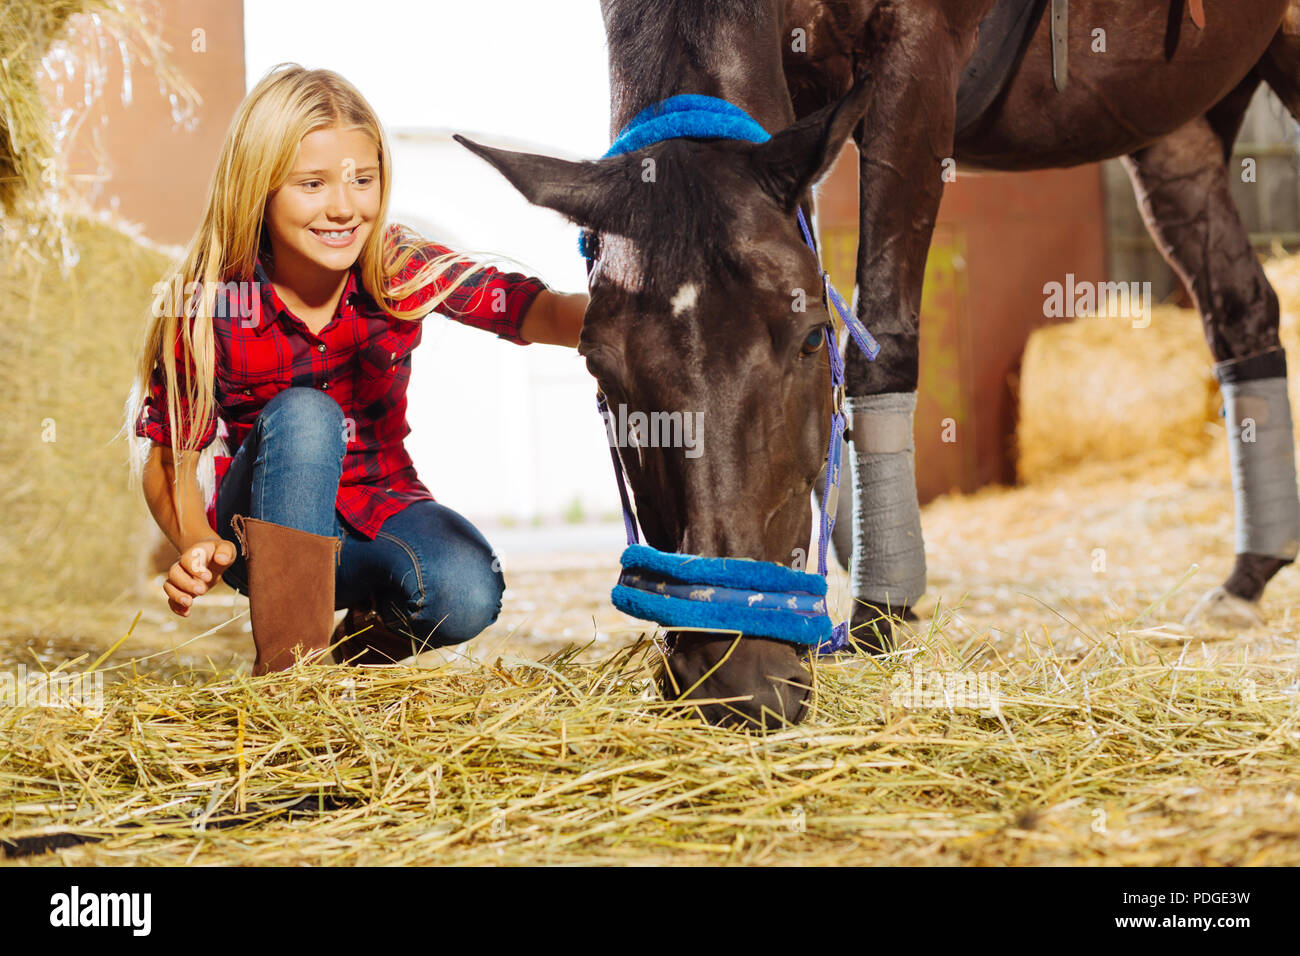 Beaming girl smiling broadly while visiting horse in stable - Stock Image